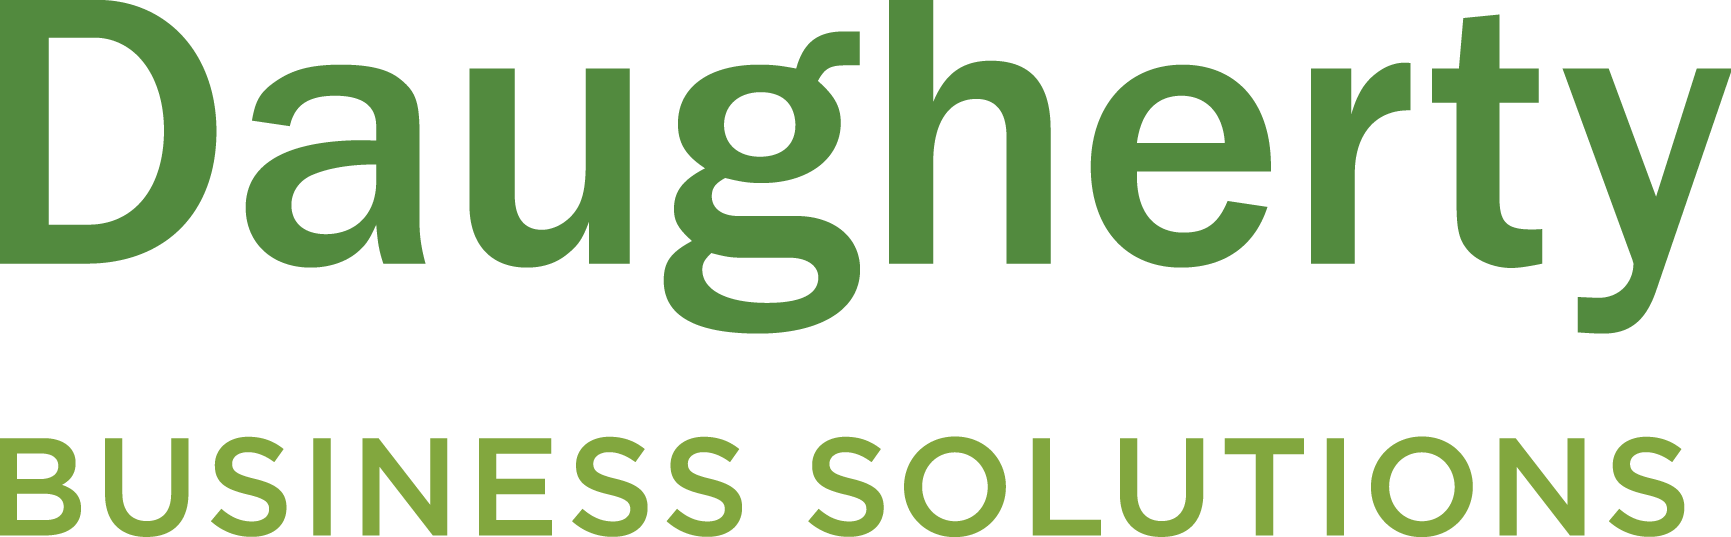 Daugherty Business Solutions Logo